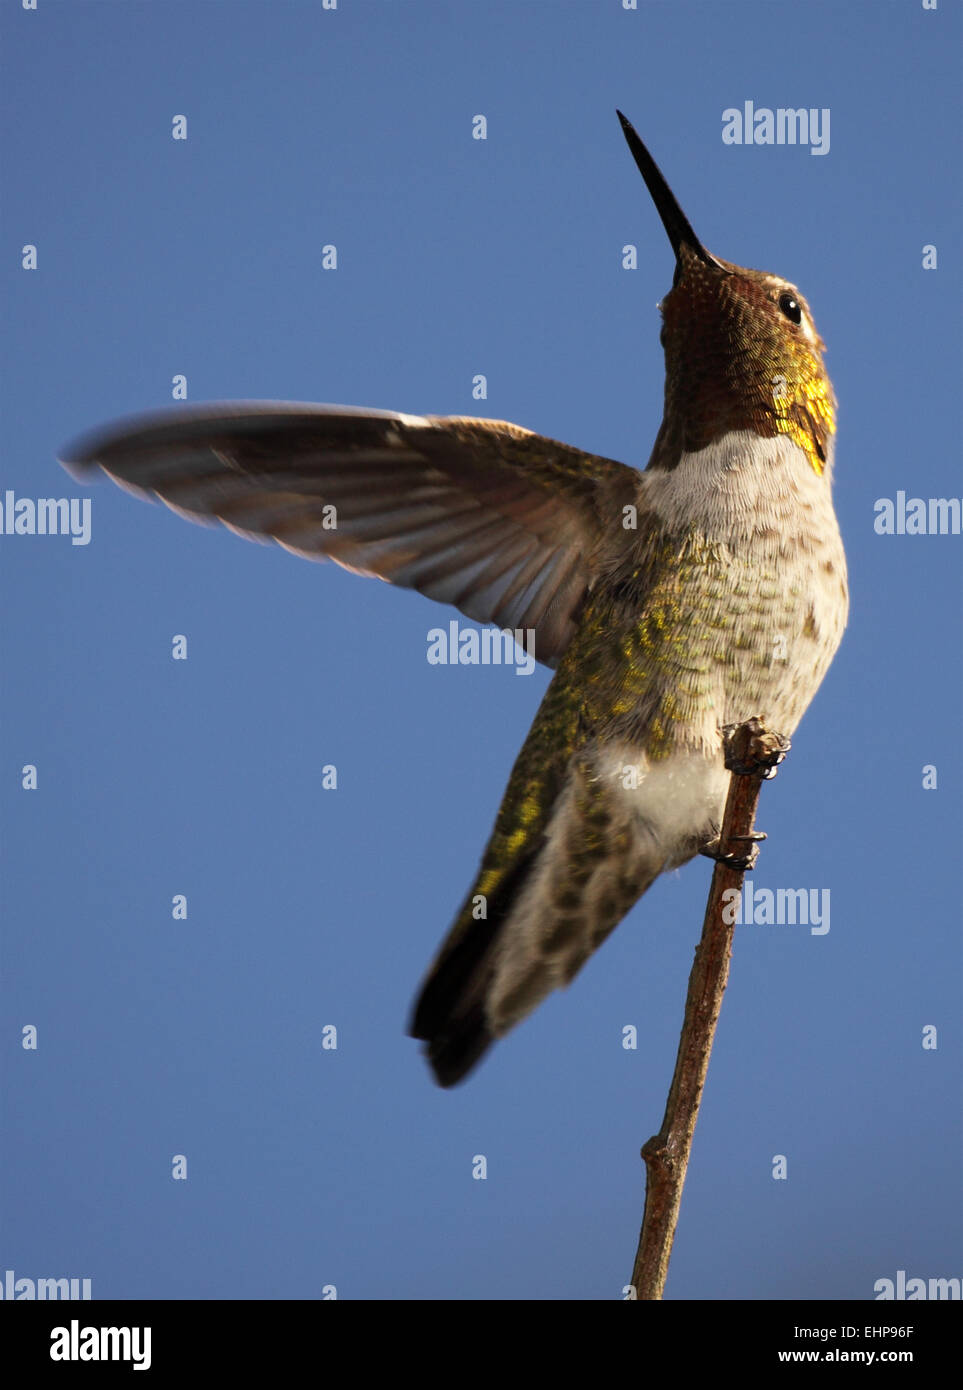 A male Anna's Hummingbird throwing out a wing. - Stock Image